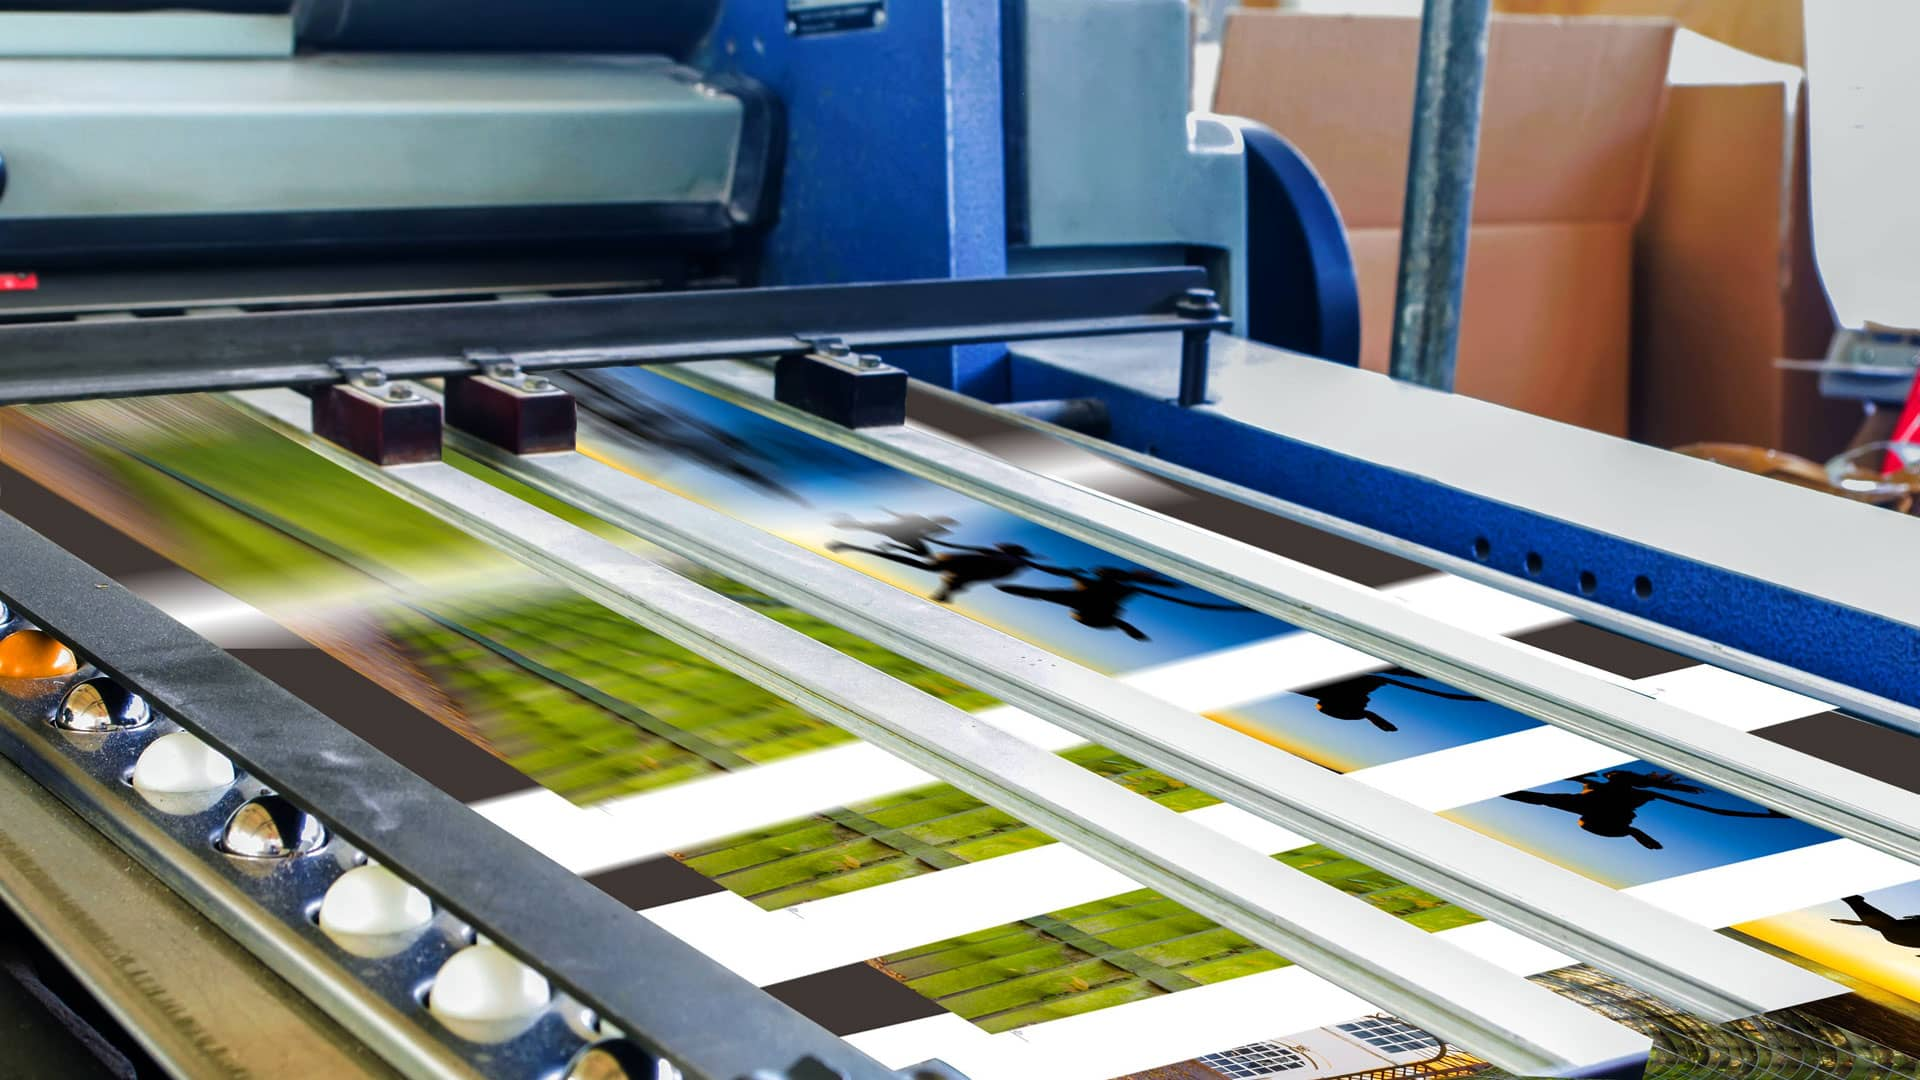 The Pros of Choosing Offset Printing